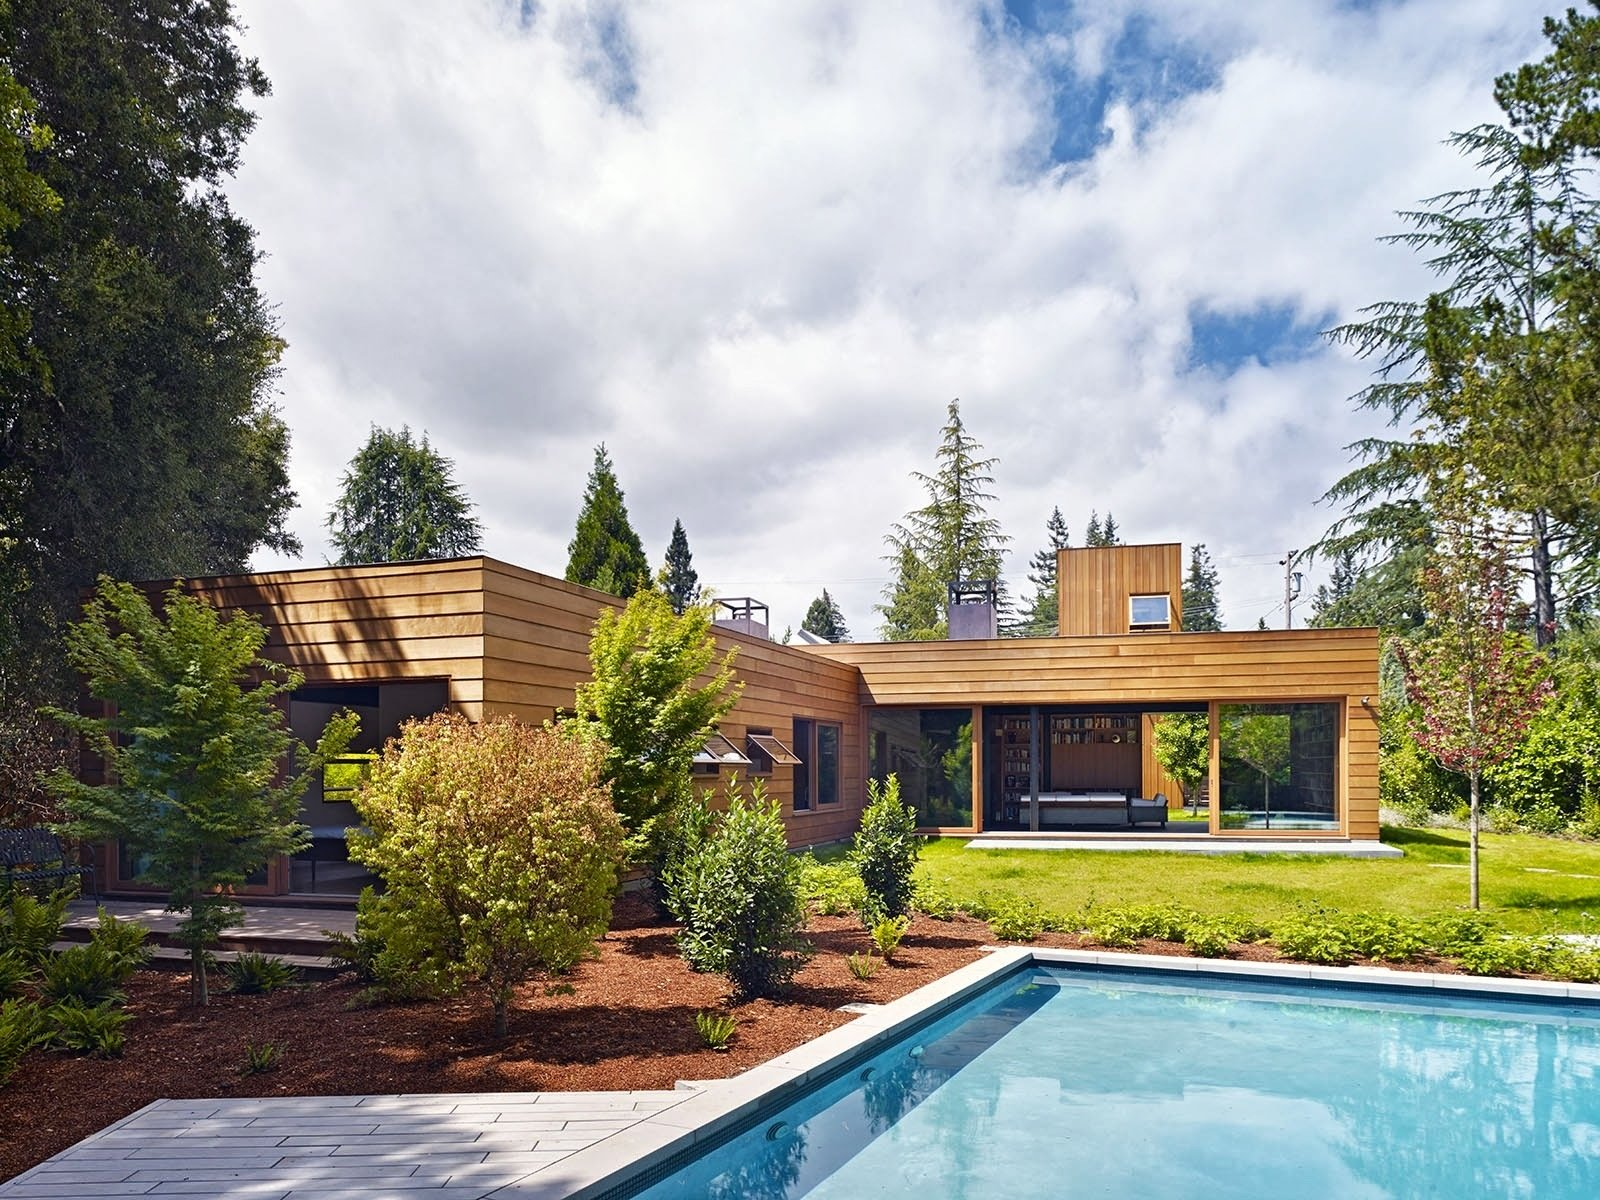 Articles about sustainable home silicon valley on Dwell.com